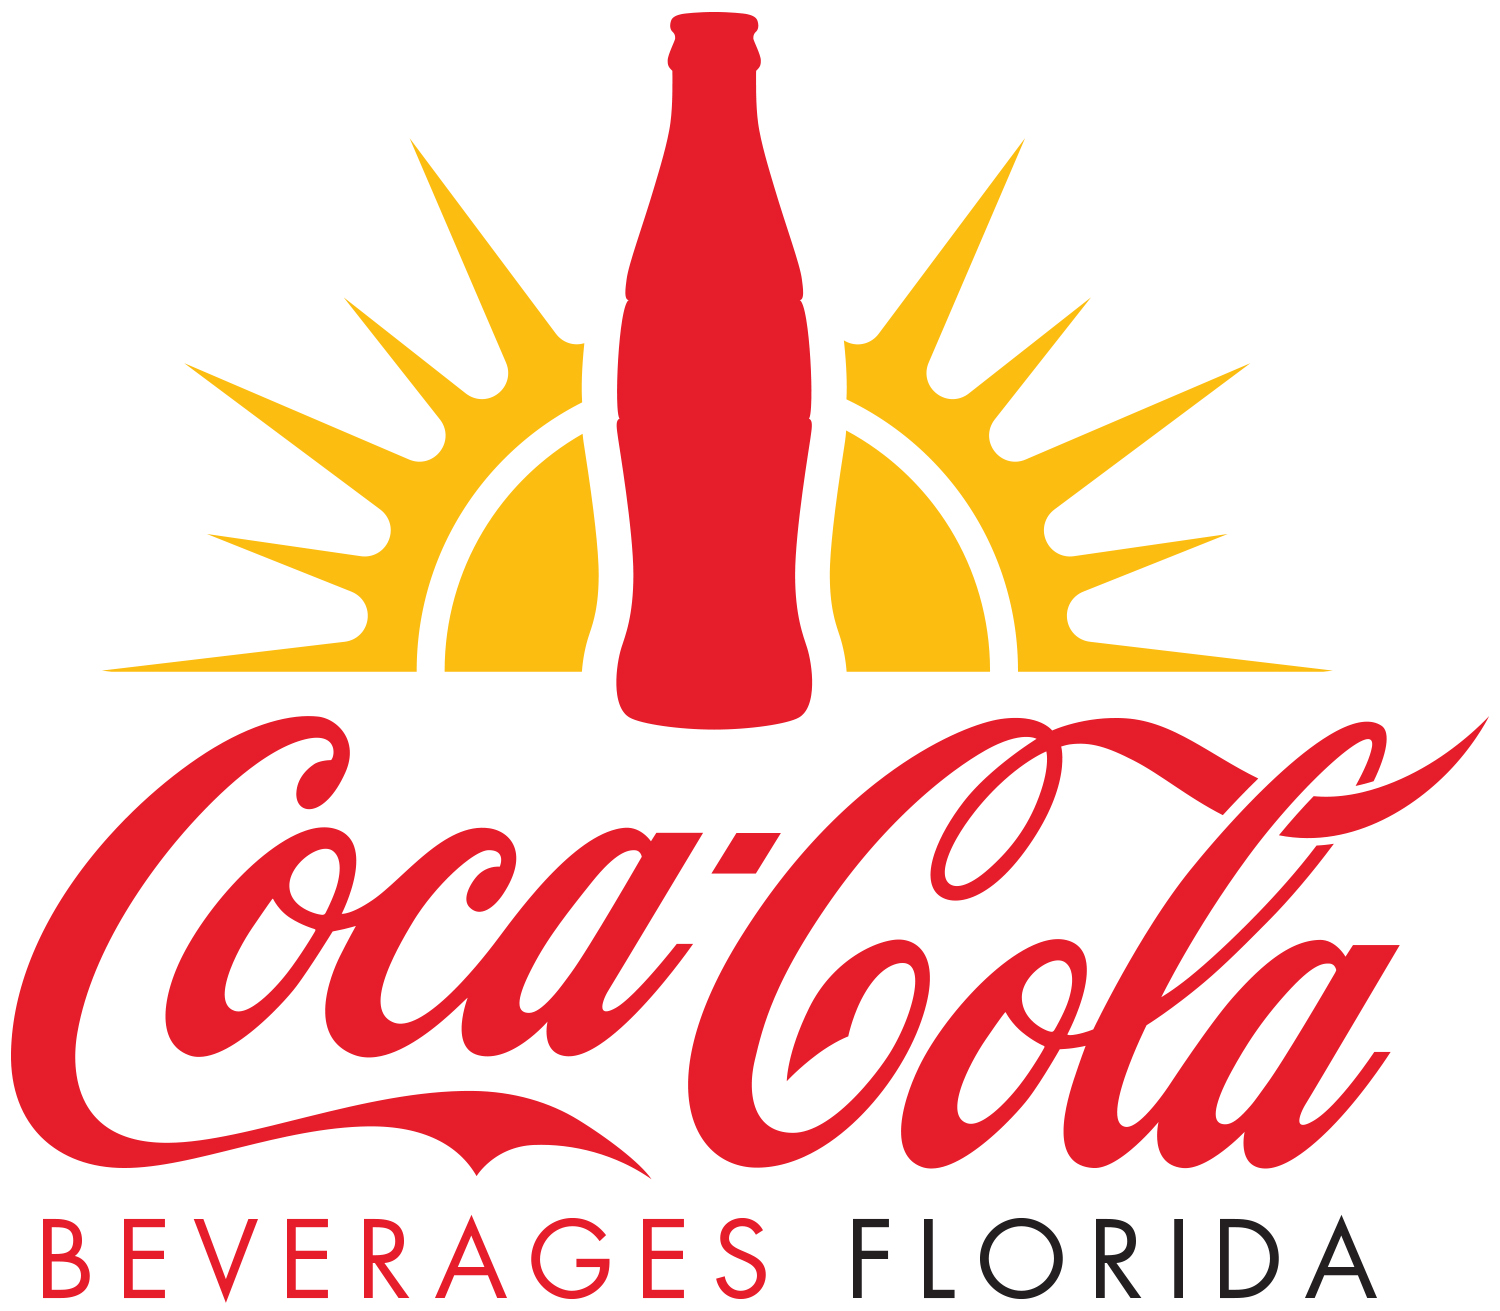 Coke Florida logo